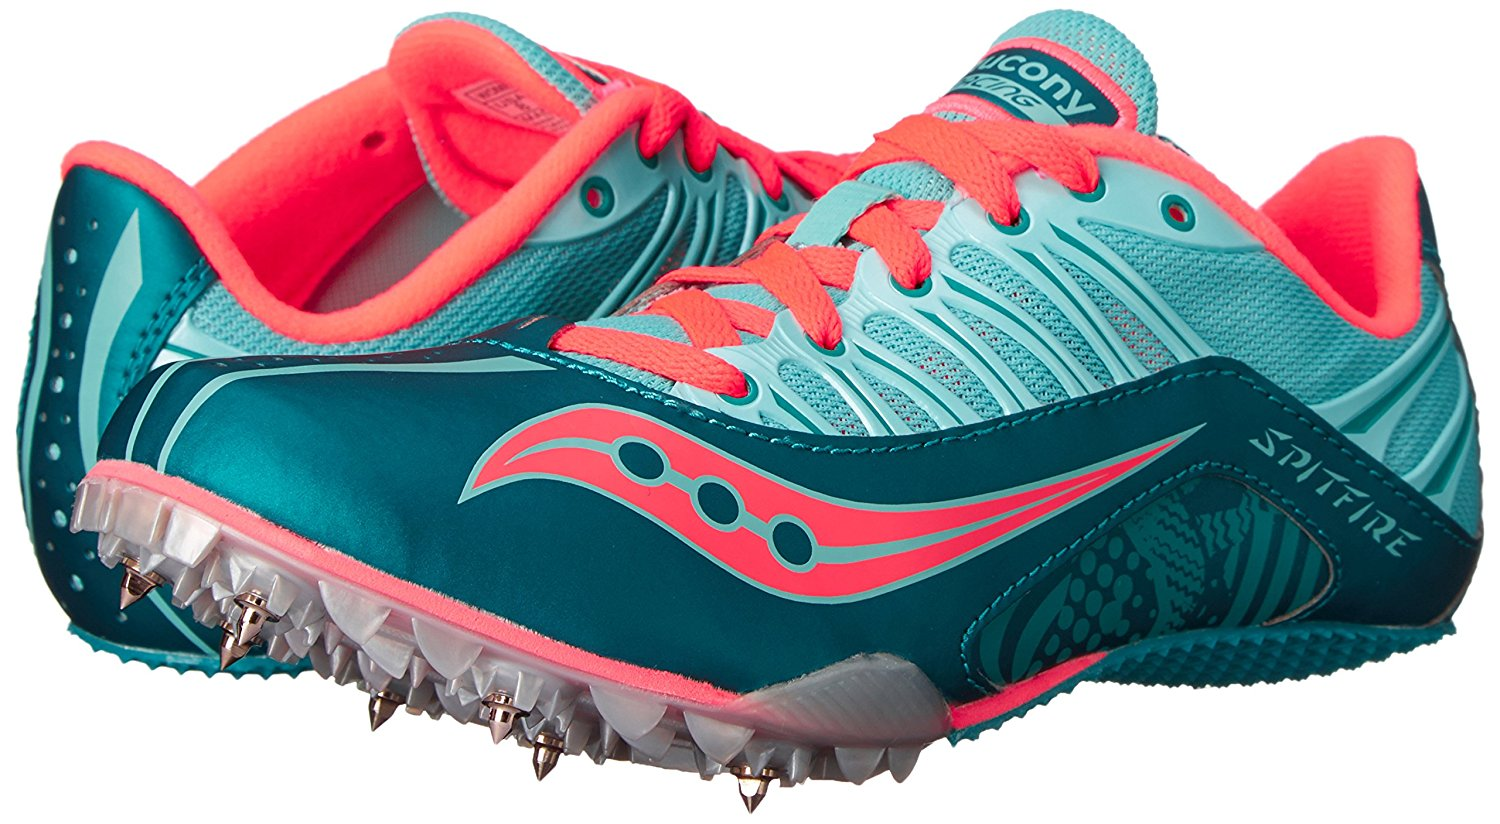 Saucony Women's Spitfire Athletic Running Track shoes Teal Coral Size 9.5M